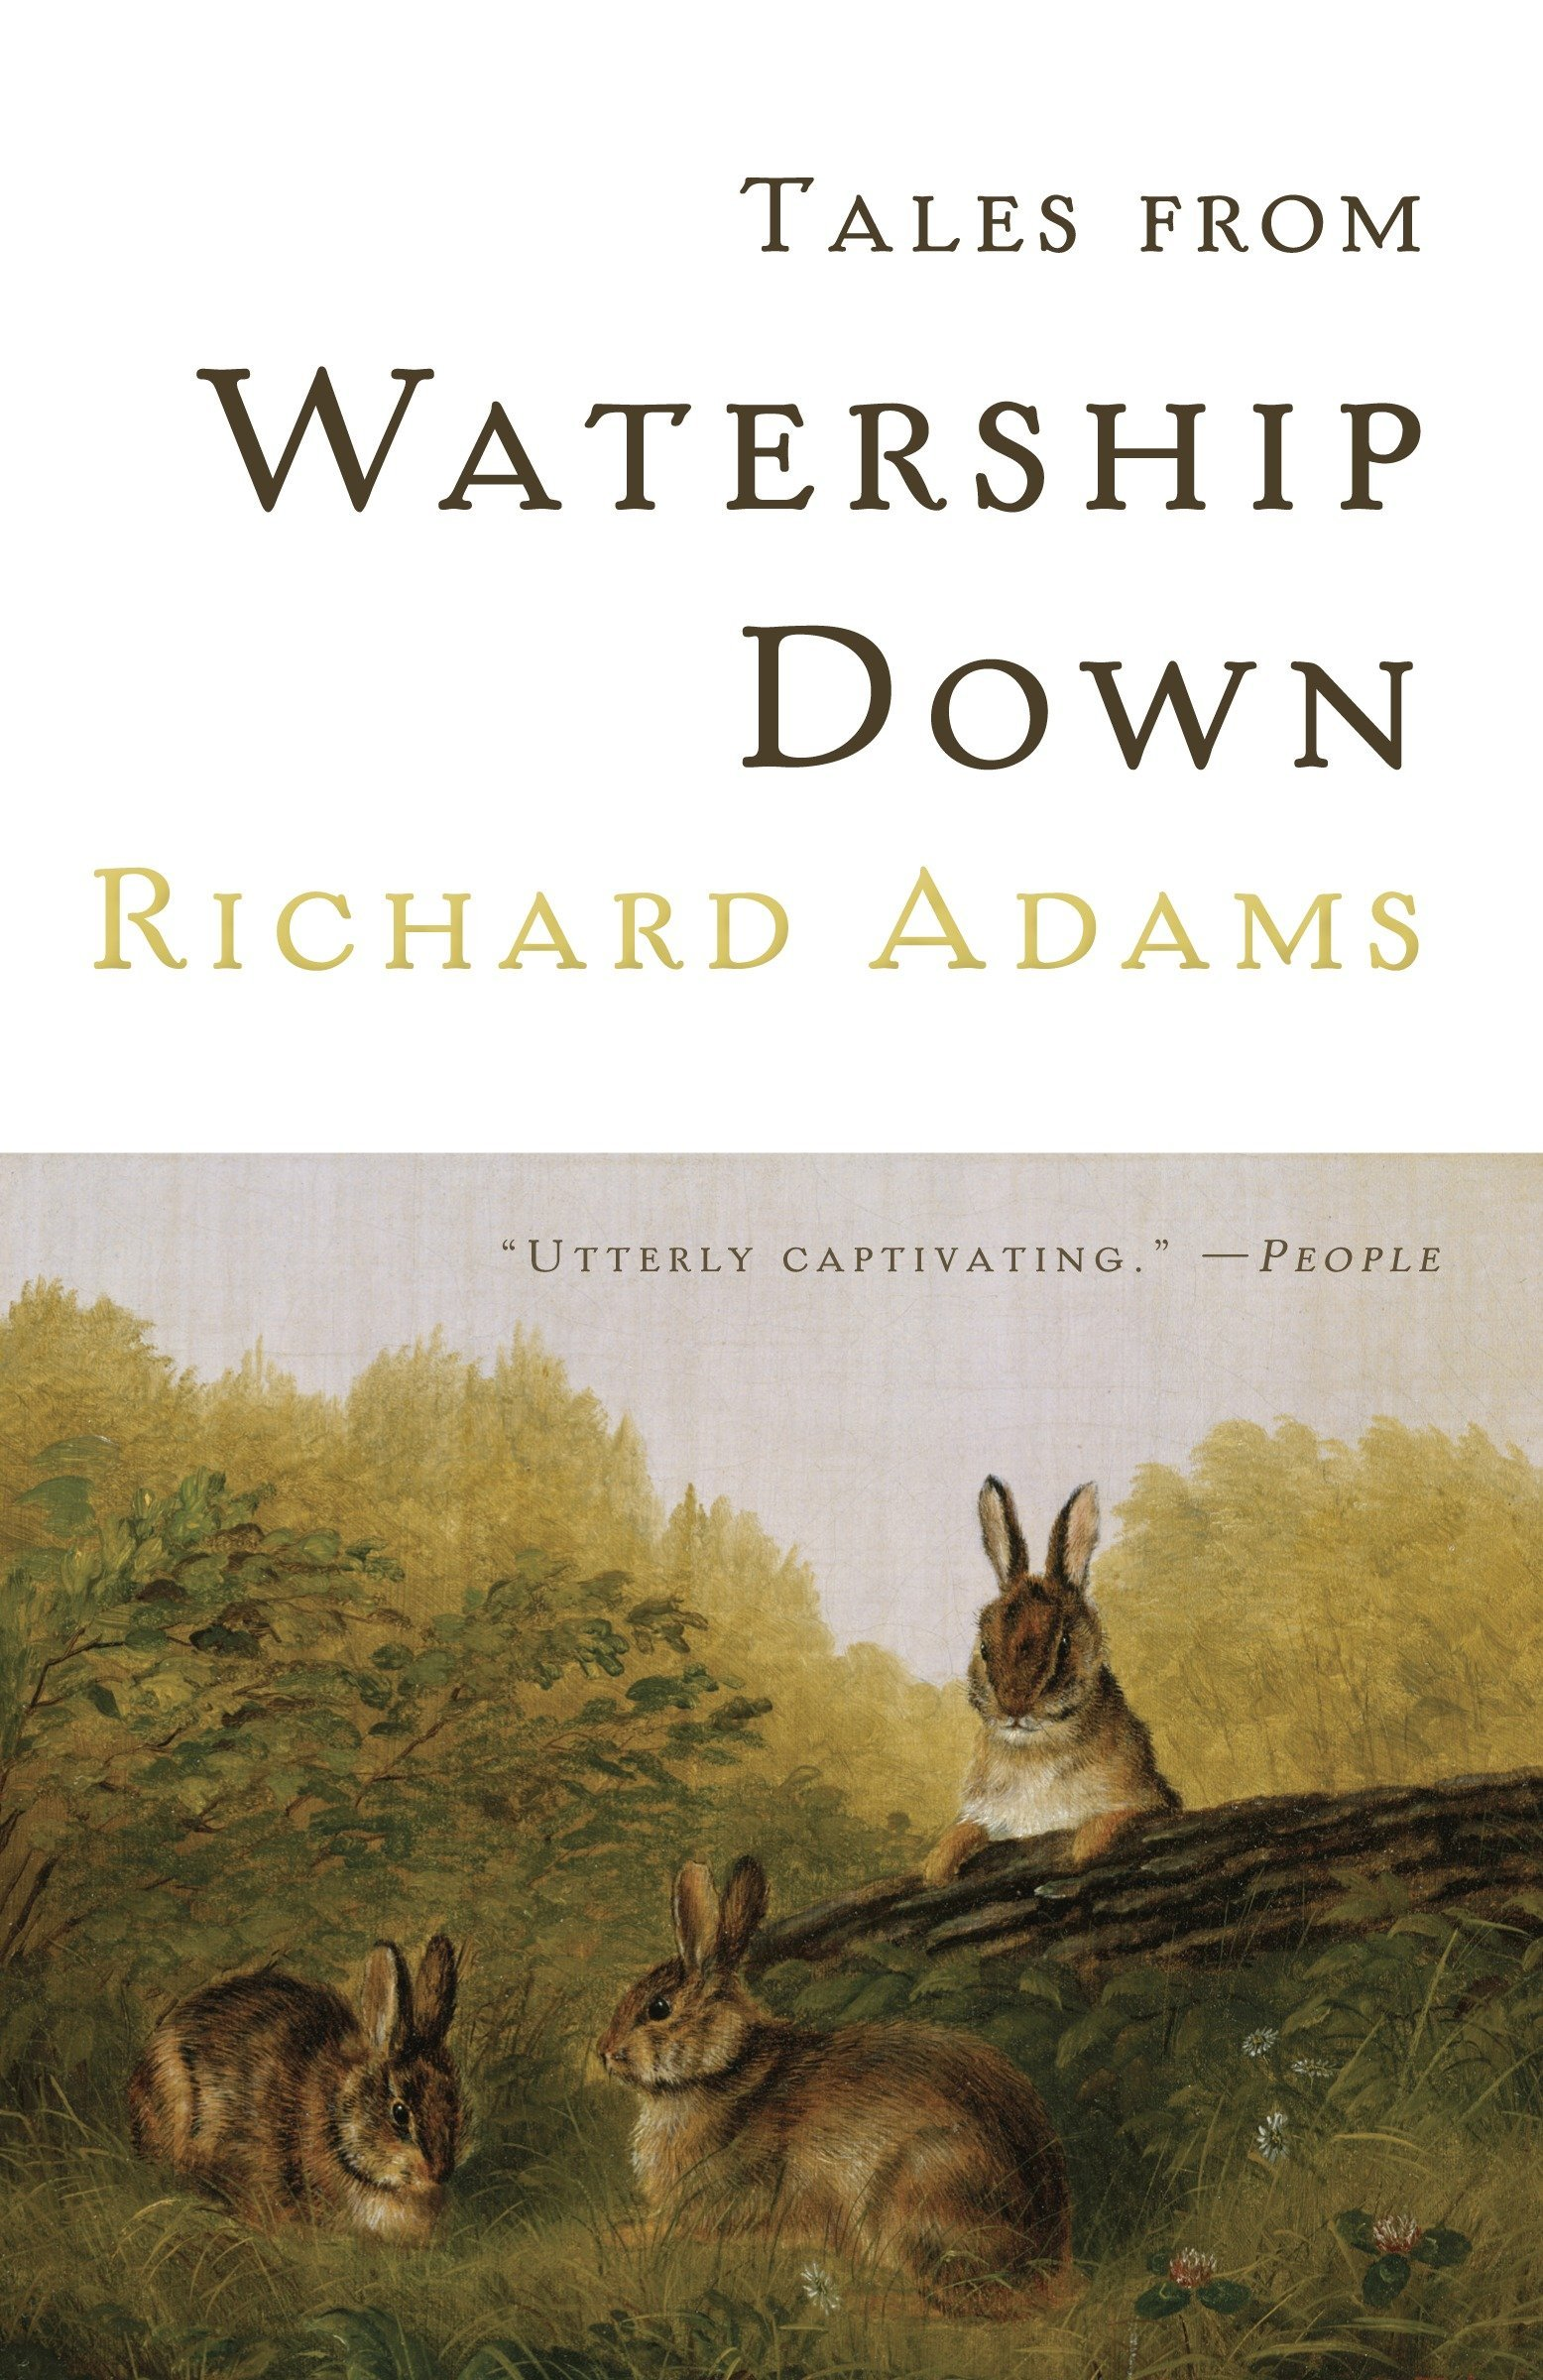 Image result for tales from watership down